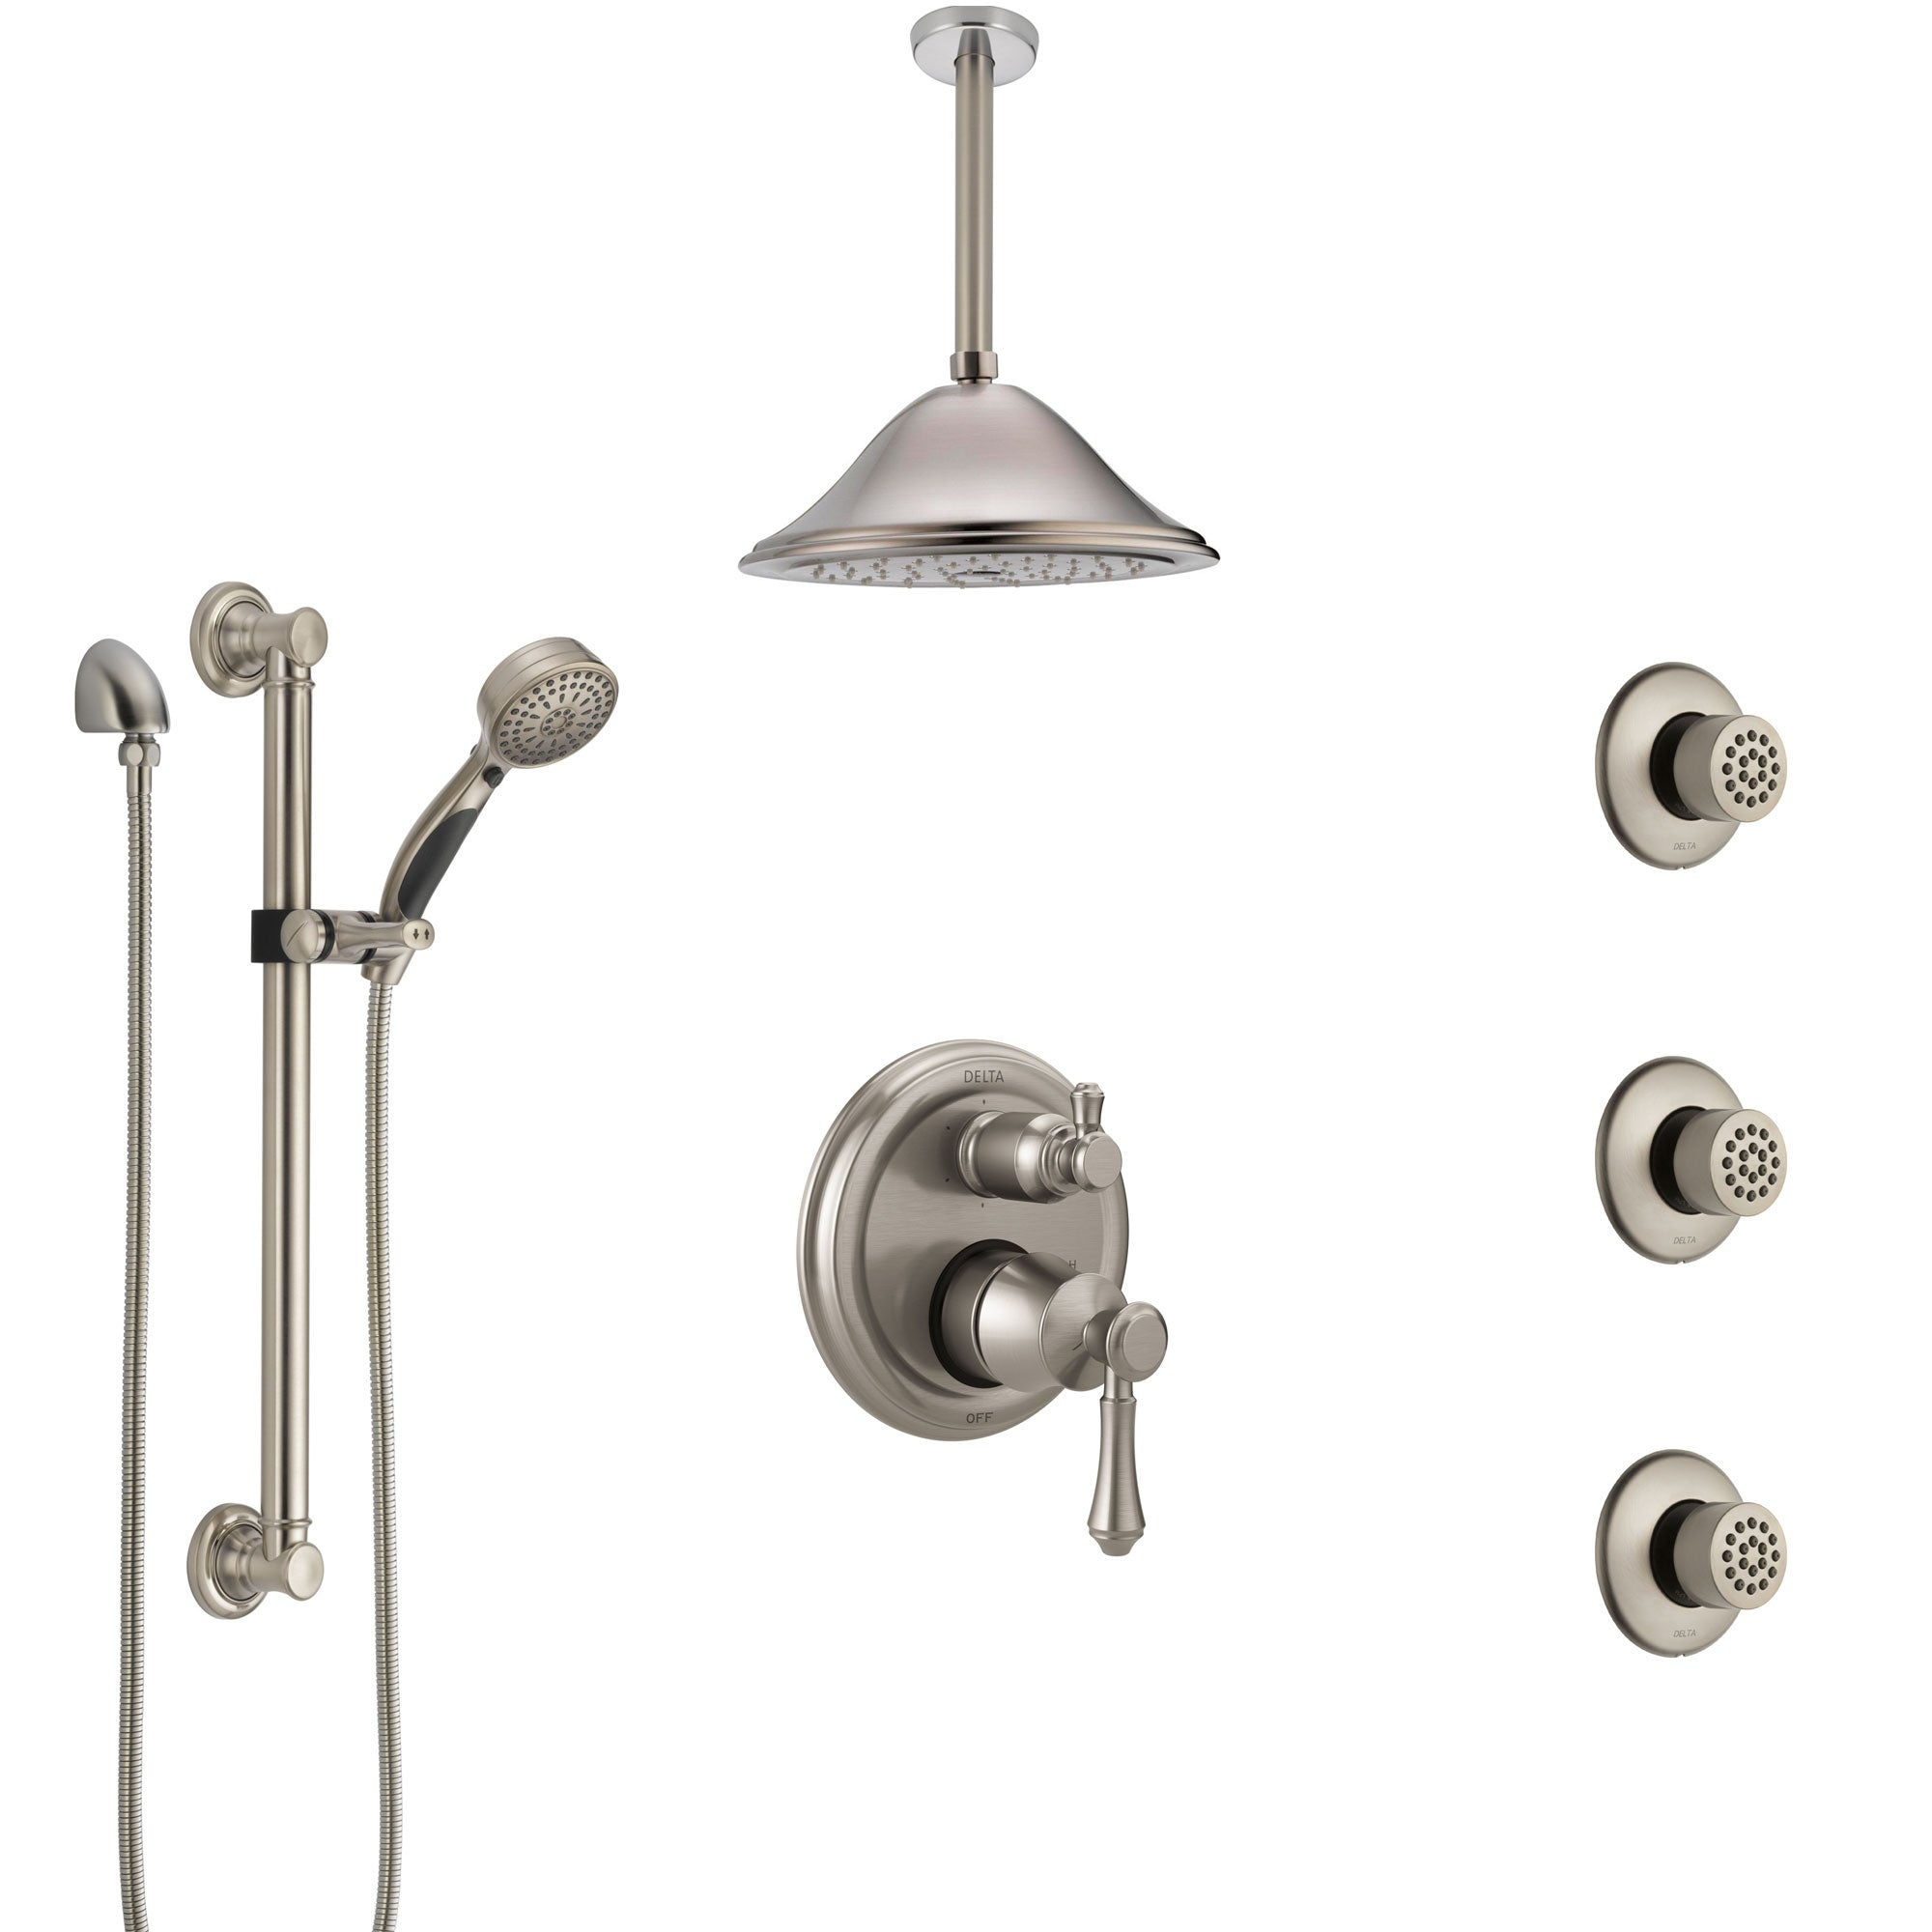 Delta Cassidy Stainless Steel Finish Integrated Diverter Shower System Control Handle, Ceiling Showerhead, 3 Body Jets, Grab Bar Hand Spray SS24997SS9